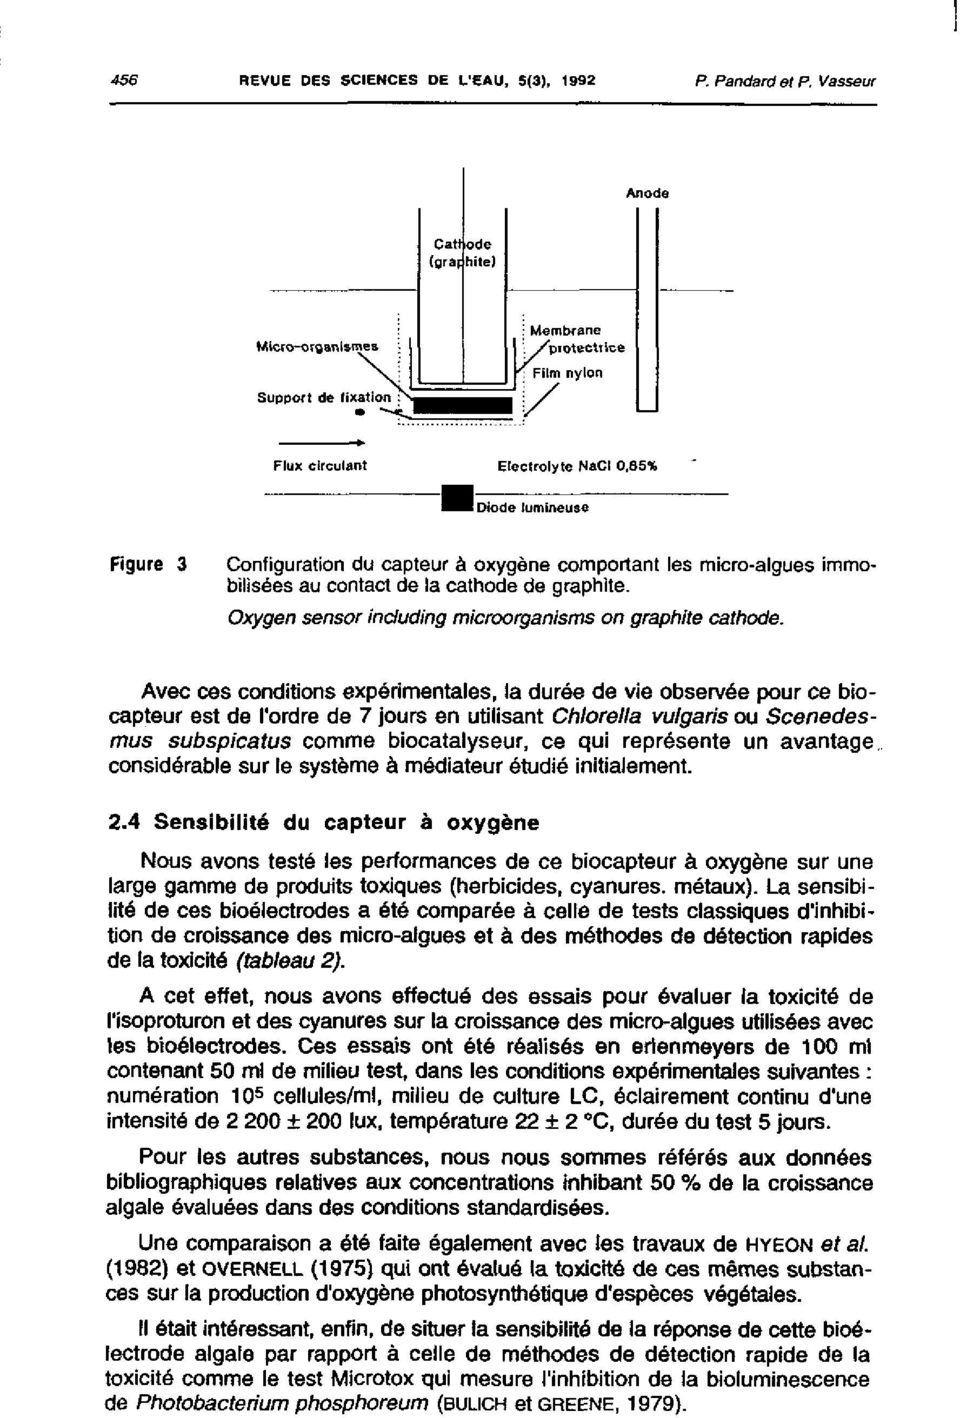 immobilisées au contact de la cathode de graphite. Oxygen sensor induding microorganisms on graphite cathode.